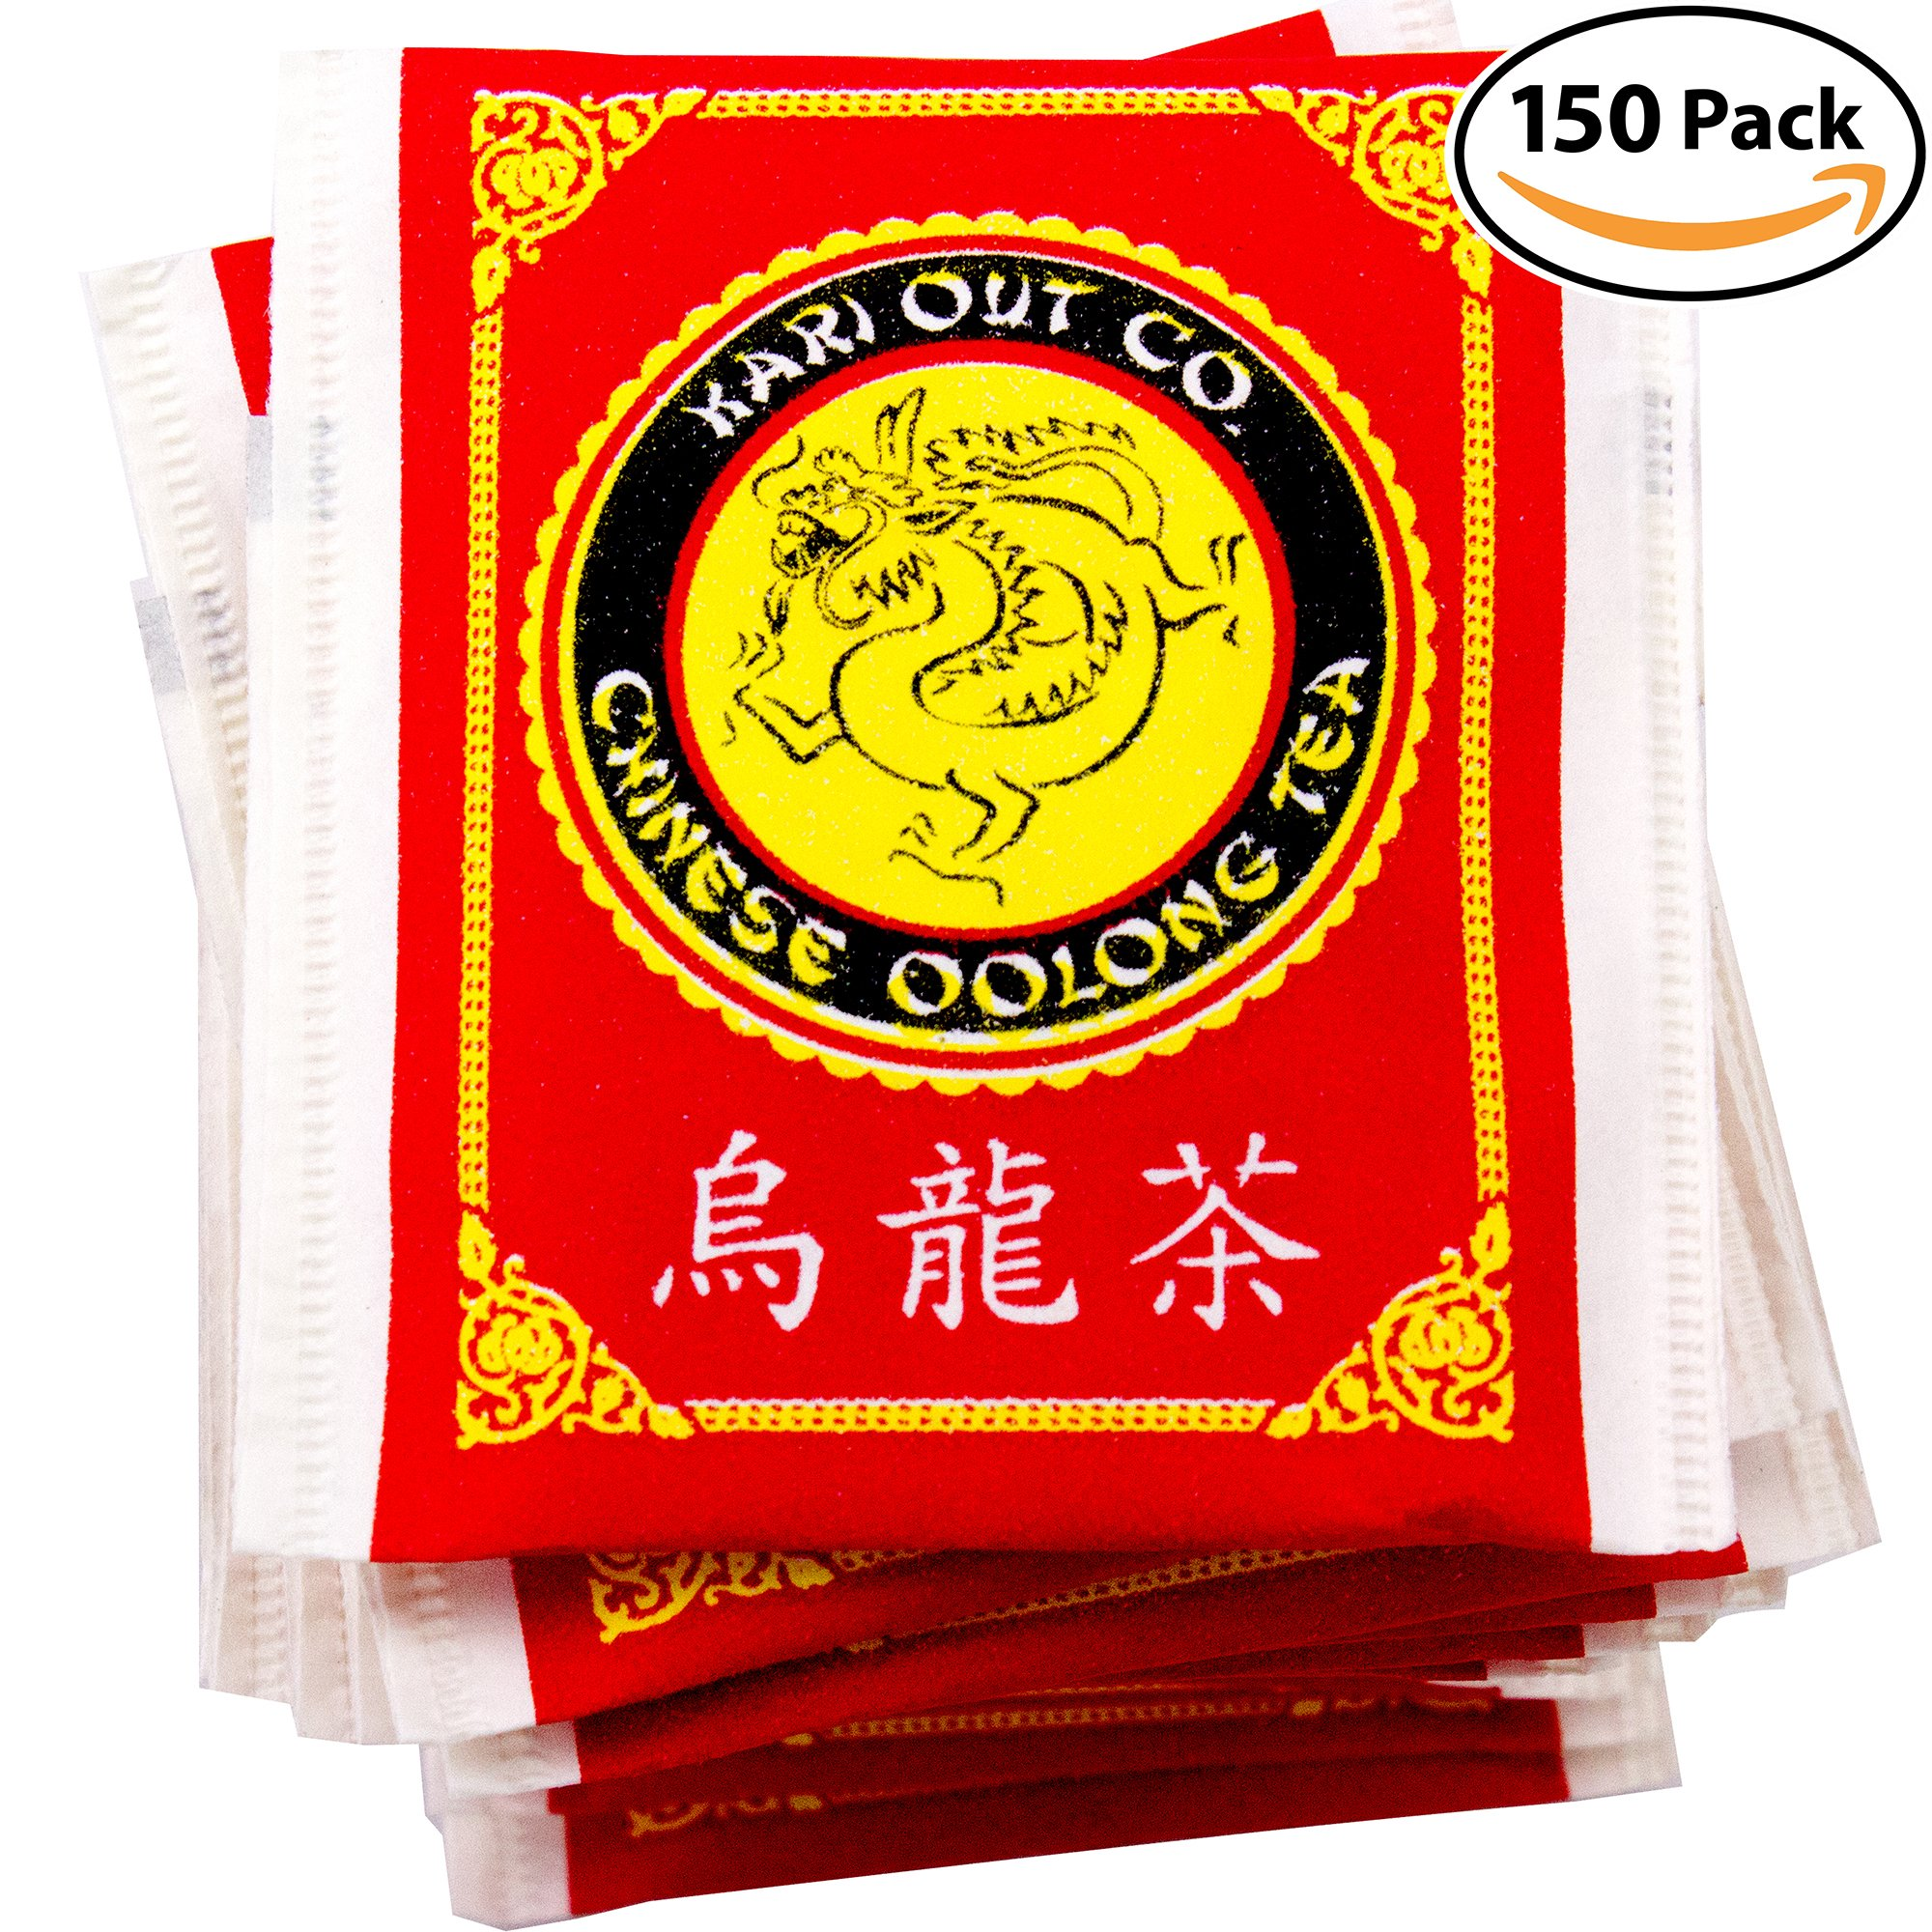 Get Quotations Premium Full Flavored Oolong Tea Bags 150 Pack Traditionally Brewed Caffeinated Drink Helps